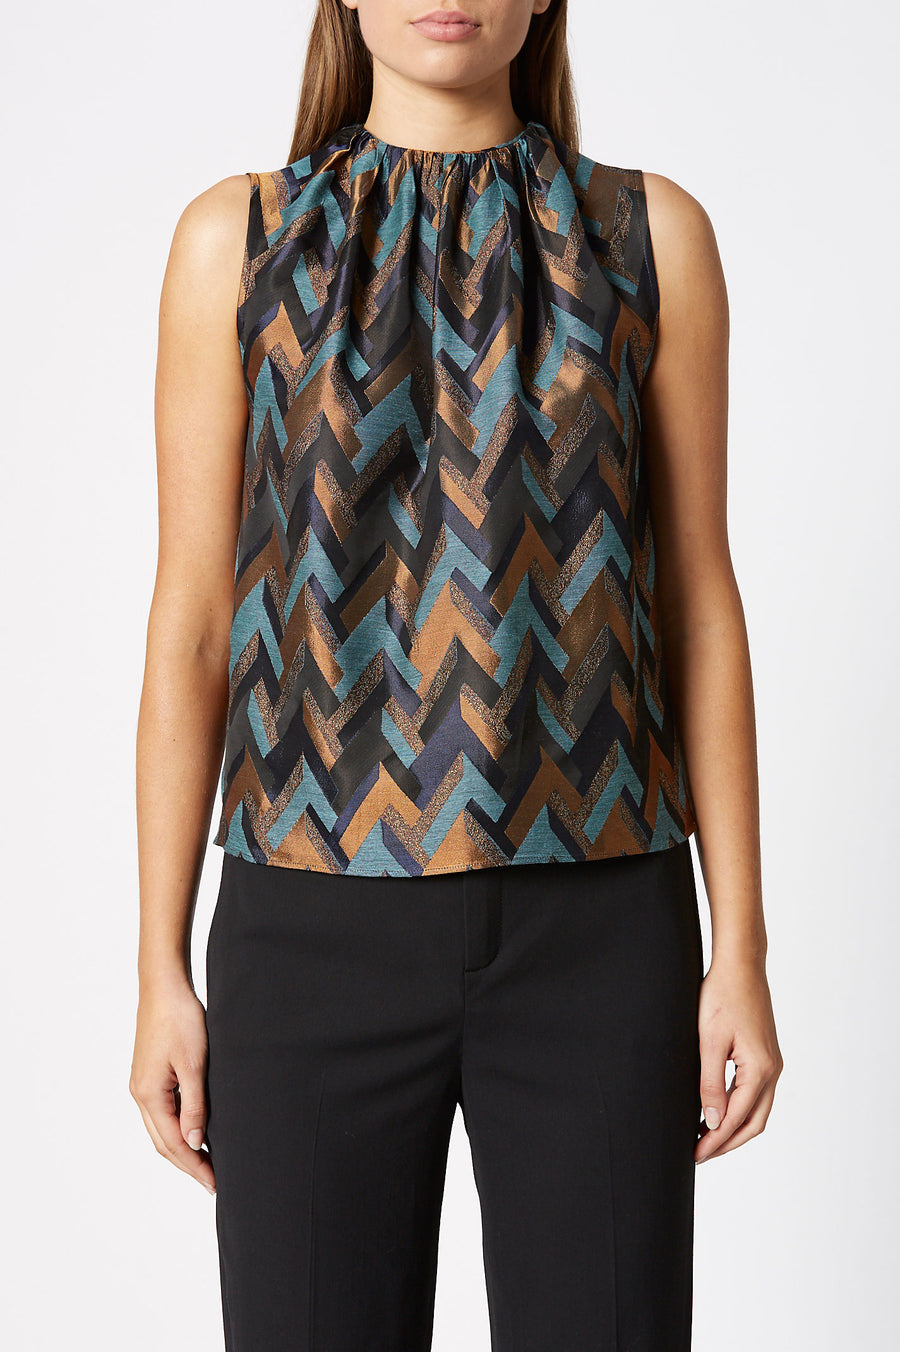 Jacquard Tank is a loosely cut tank with gathered neckline detail